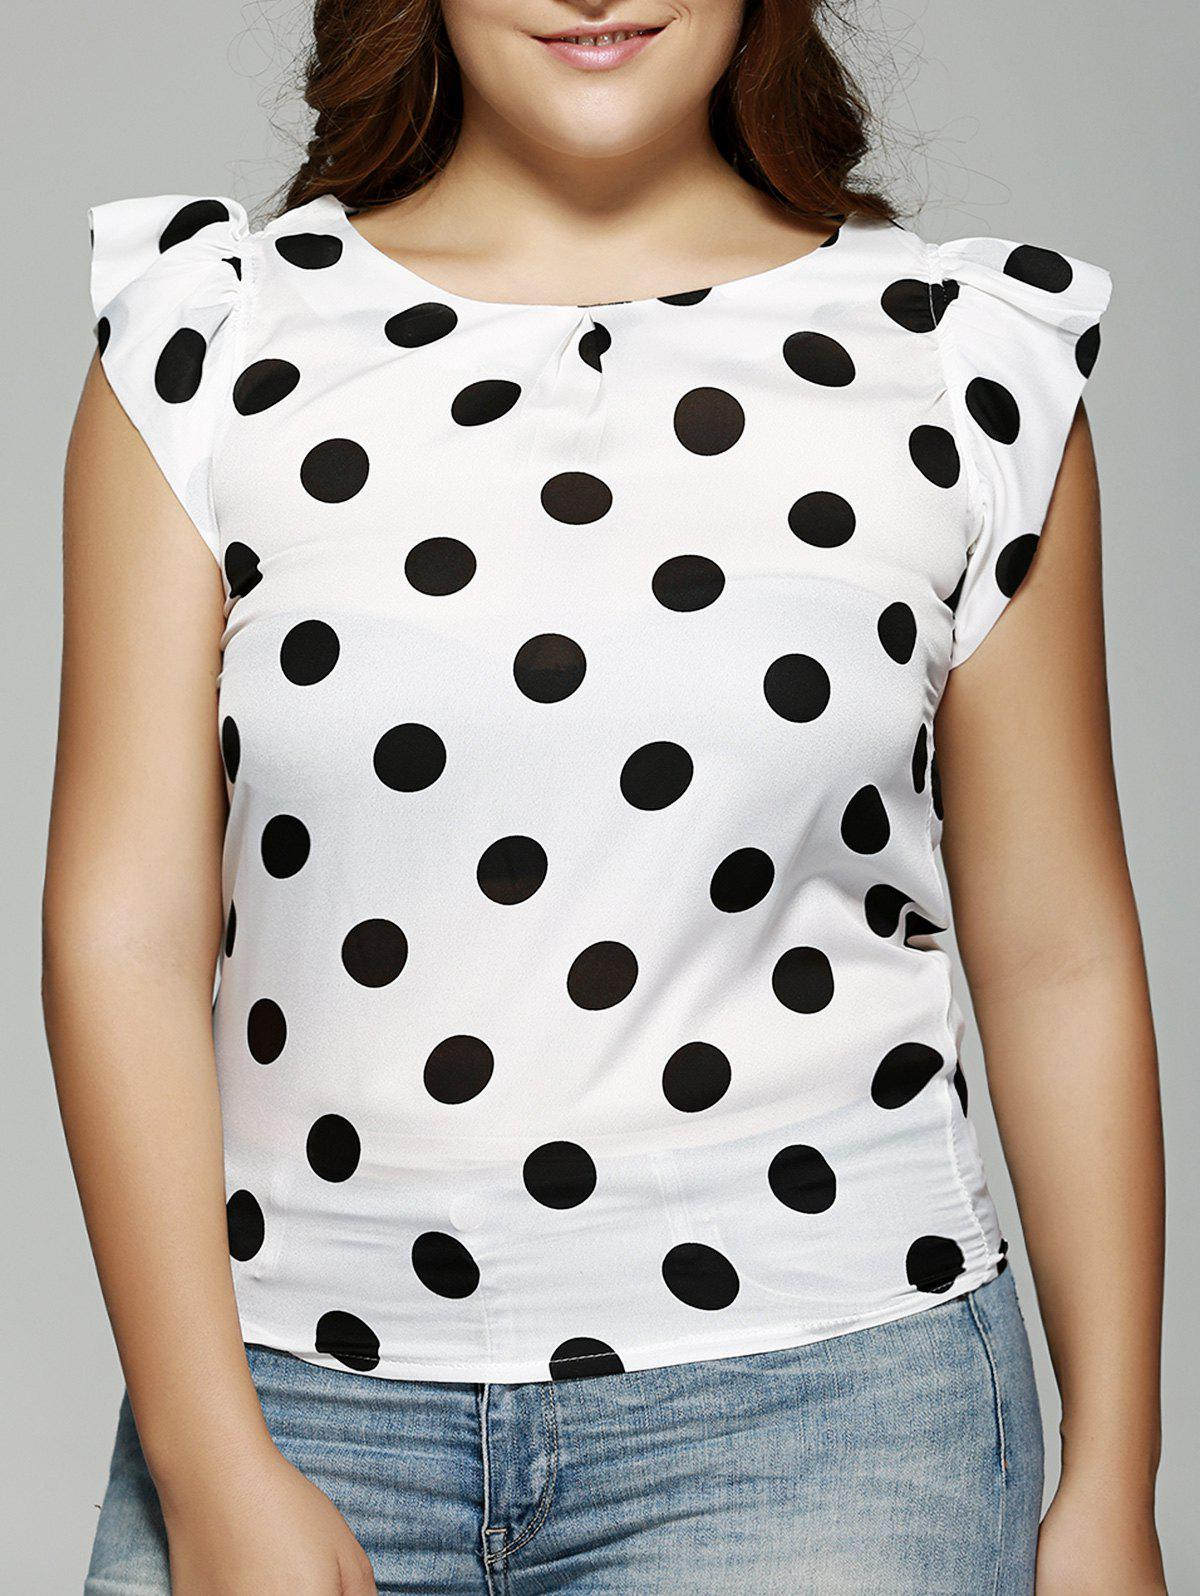 Plus Size Polka Dot Ruffle Sleeve T-Shirt - WHITE/BLACK 2XL